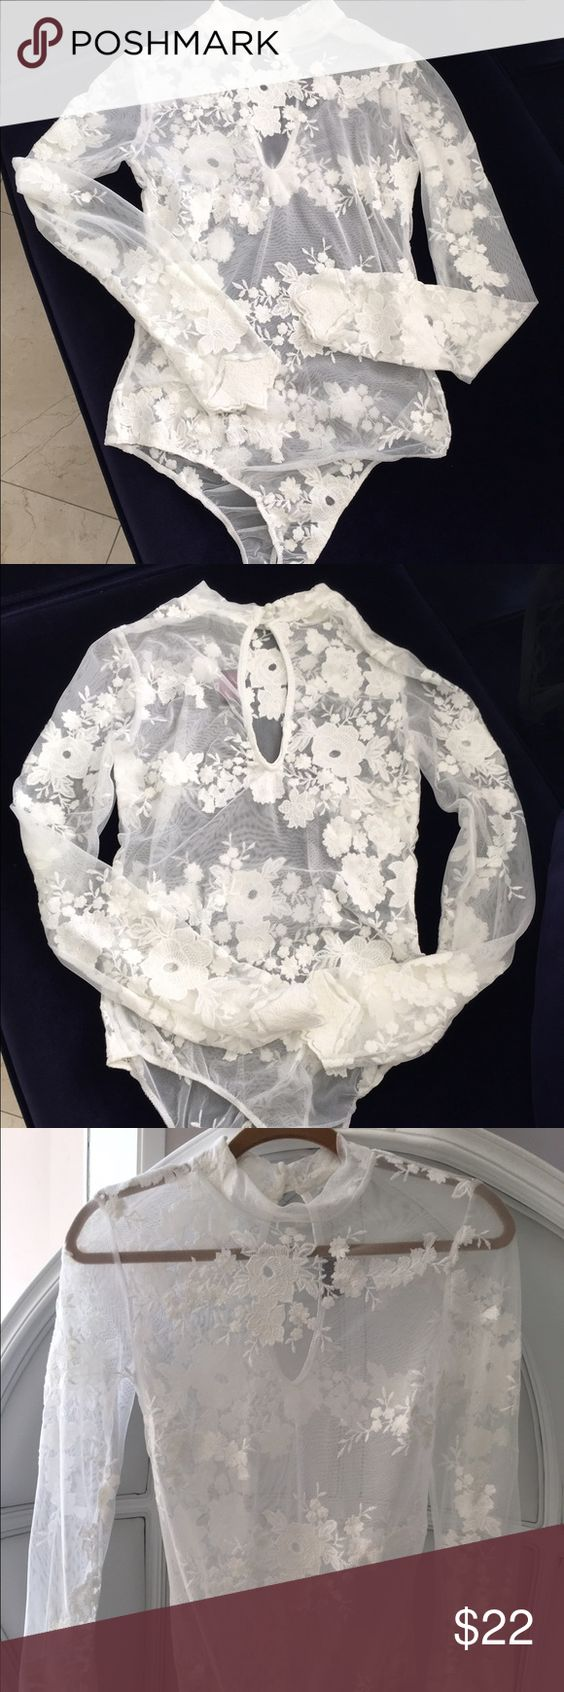 White lace bodysuit Brand new long sleeve white lace bodysuit Tops